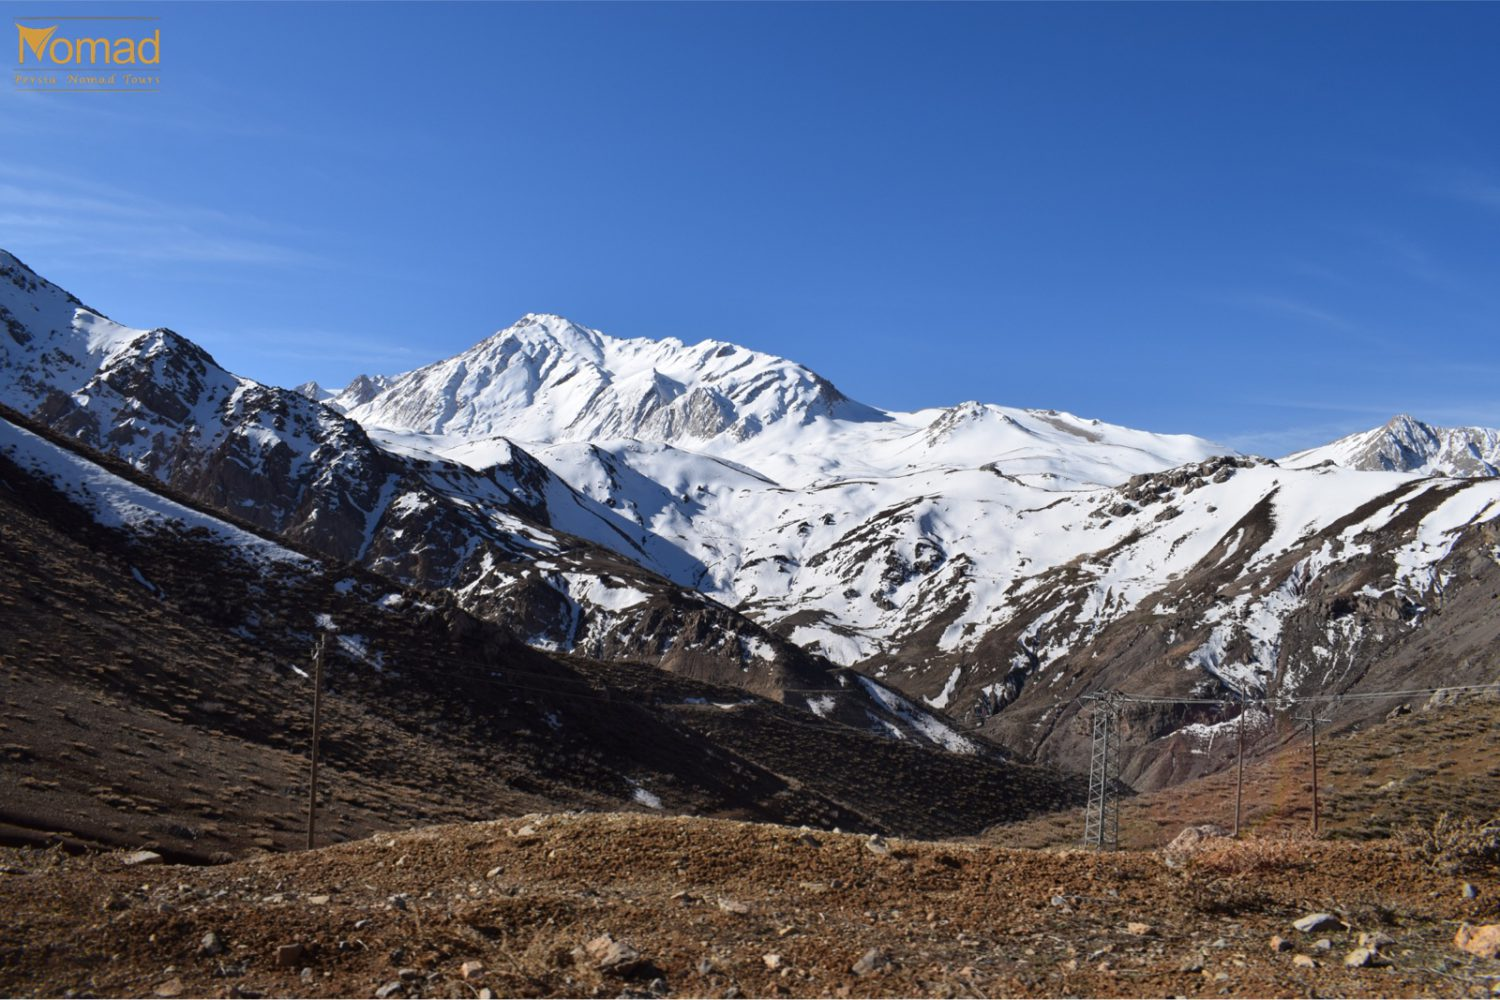 Snowy zagros mountains in iran